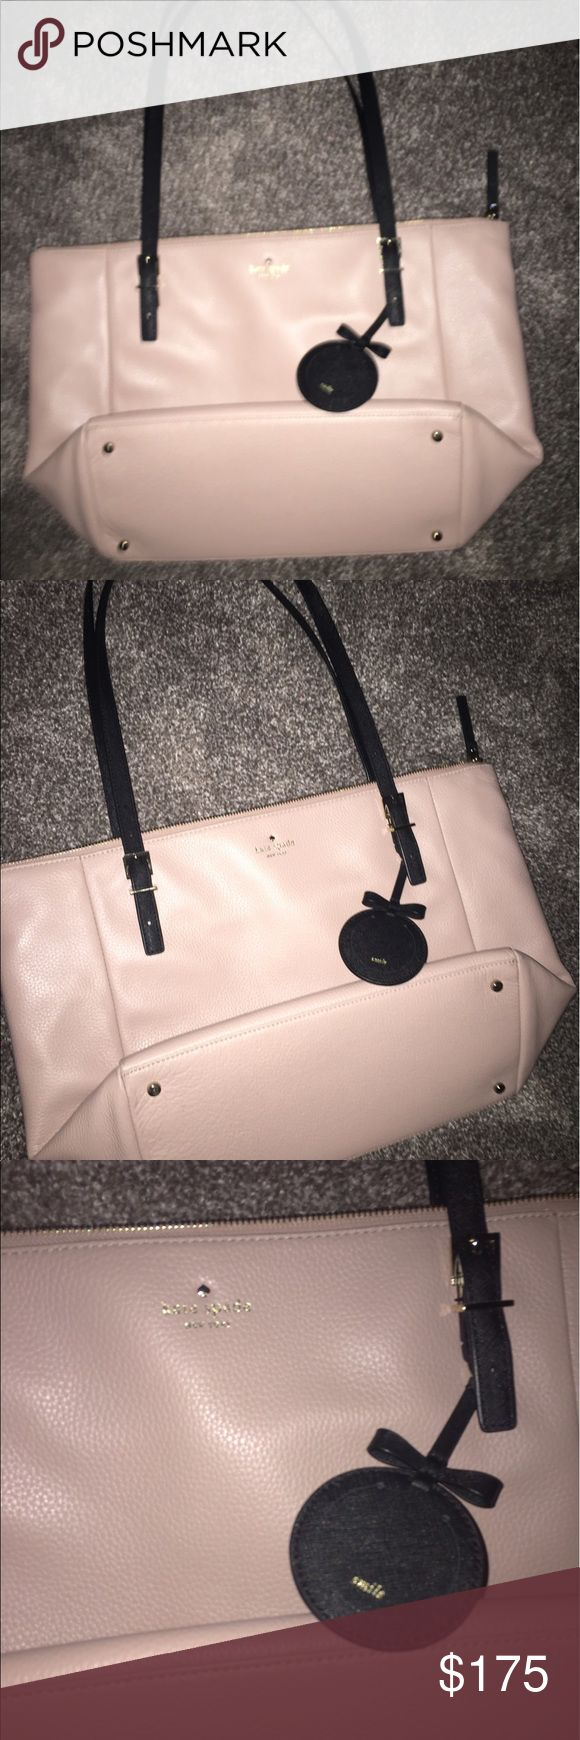 Kate spade pink bag 👜 Make offers 👜 previously used but taken good care of, no imperfections, and has no scratches or marks. Zipper works perfectly and glides nice and smooth.  Fits a lot and is a very functional purse. leather and soft to touch, the purse is pink all around with no added pattern. The purse is soft and the straps are comfortable. the bag features a zipper to enclose all your objects of choice.Comes with a free included dust bag. kate spade Bags Shoulder Bags